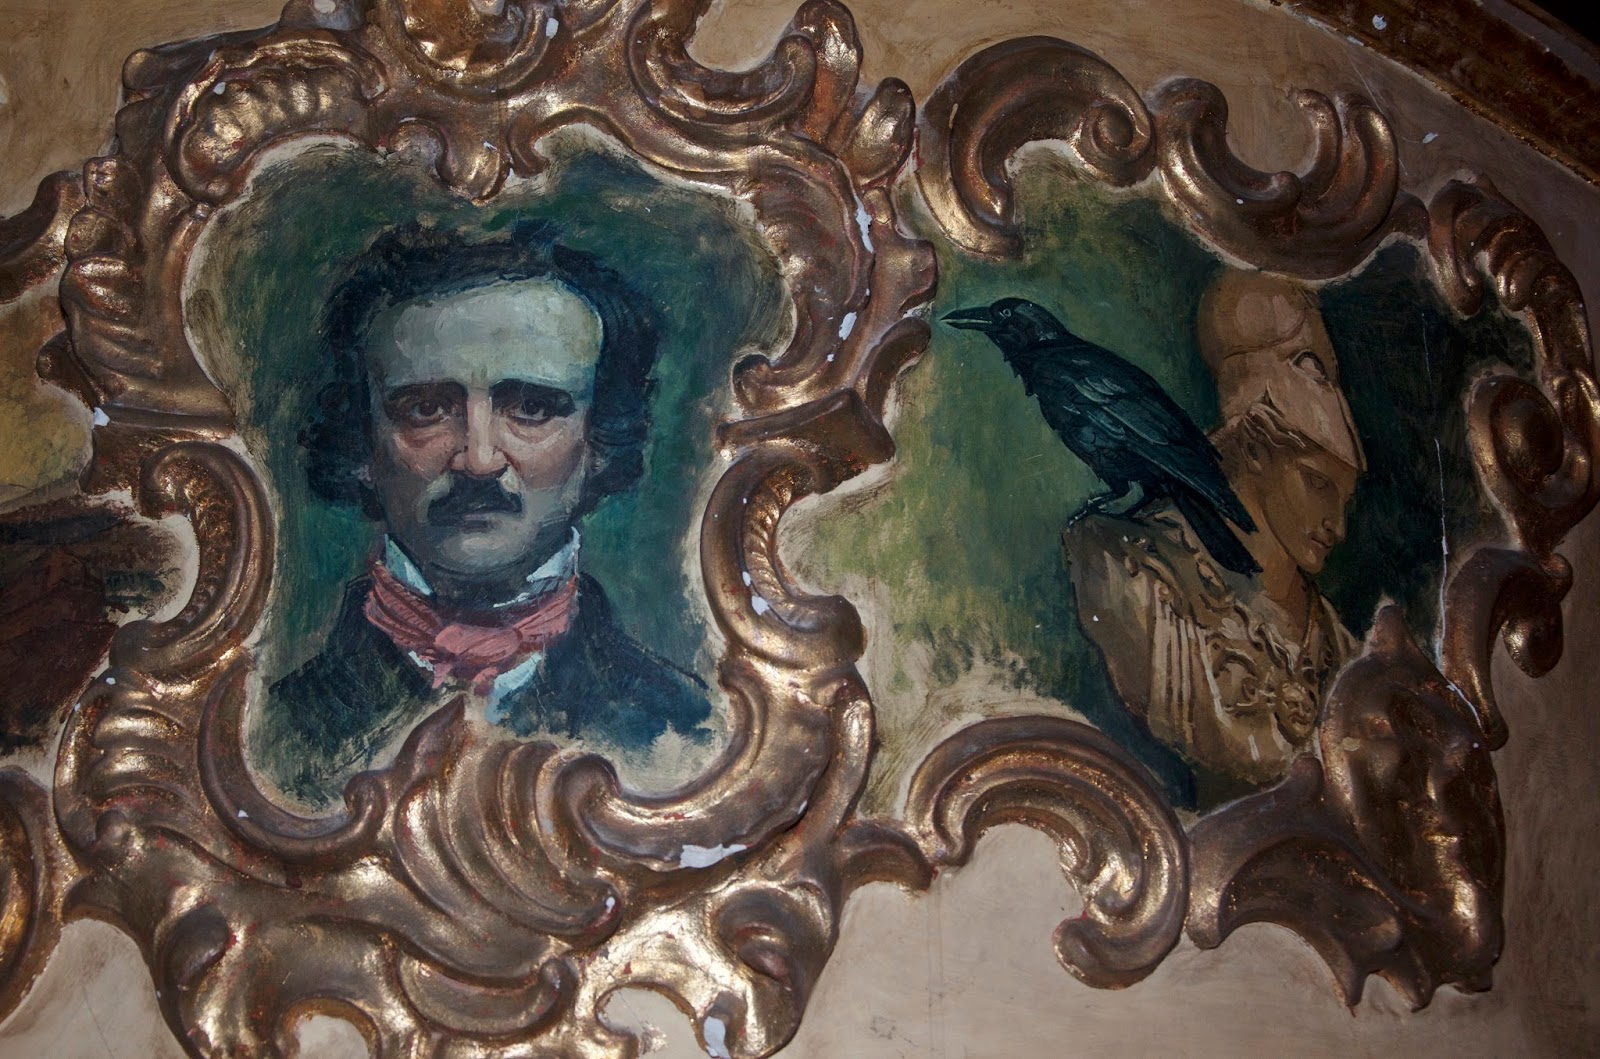 Edgar Allan Poe and raven painting